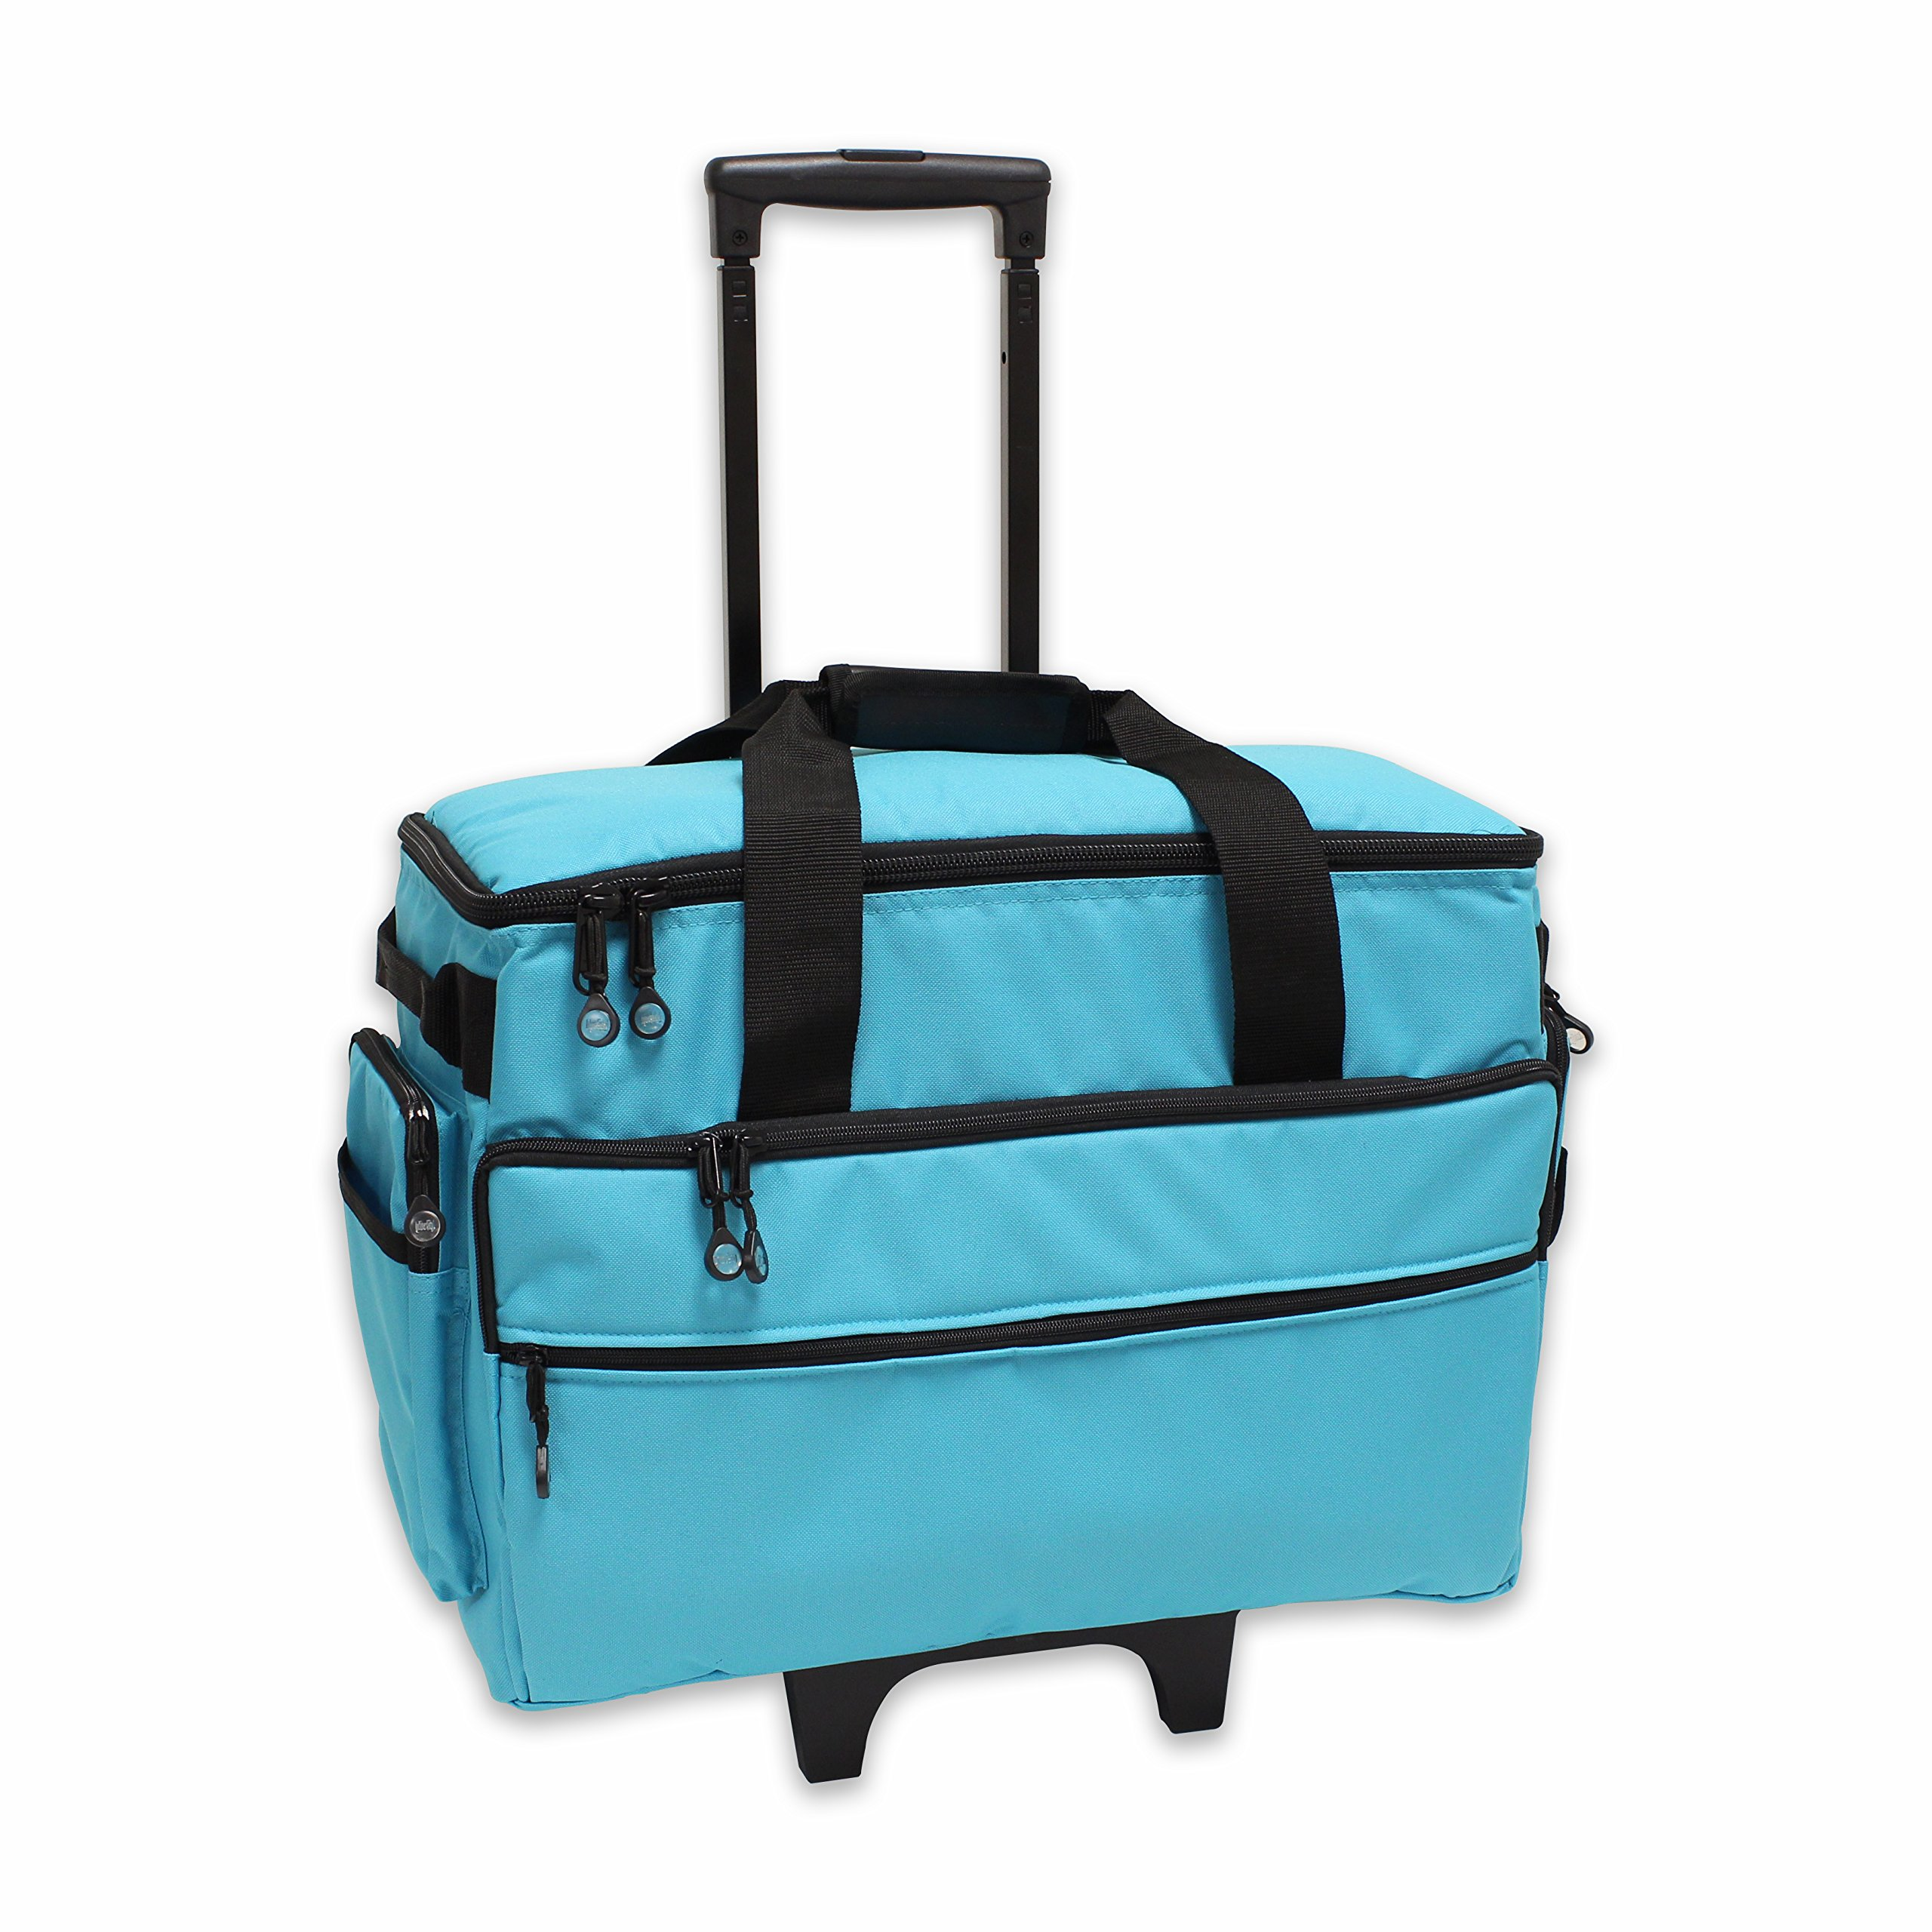 BlueFig TB19 Sewing Machine Trolley (Aqua) by Bluefig